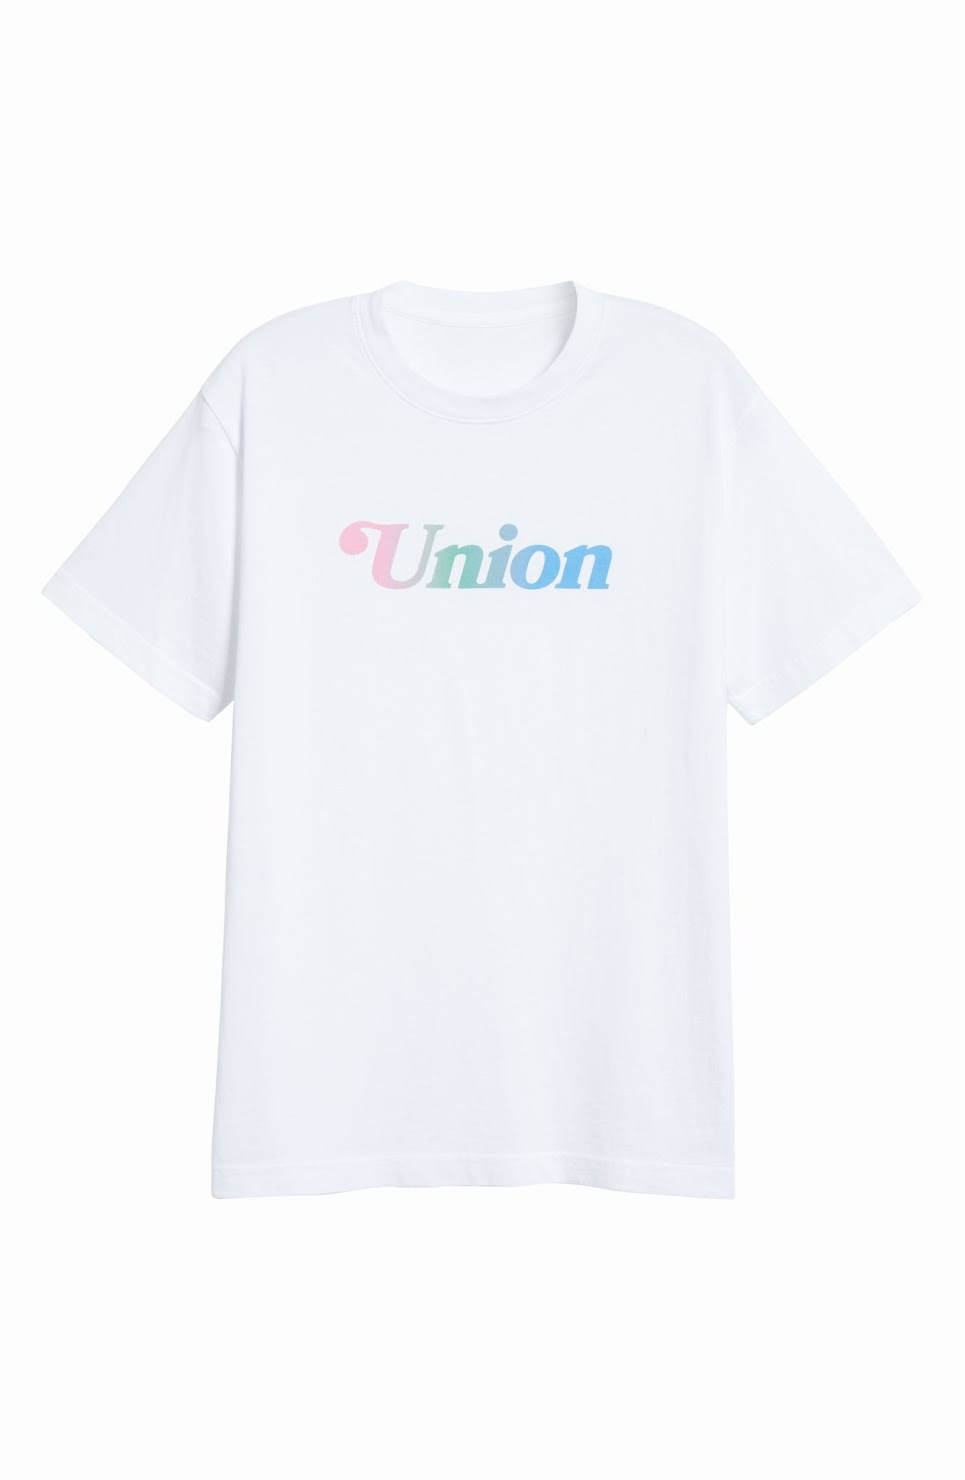 Union_Summer Logo Tee_White_$42.jpeg